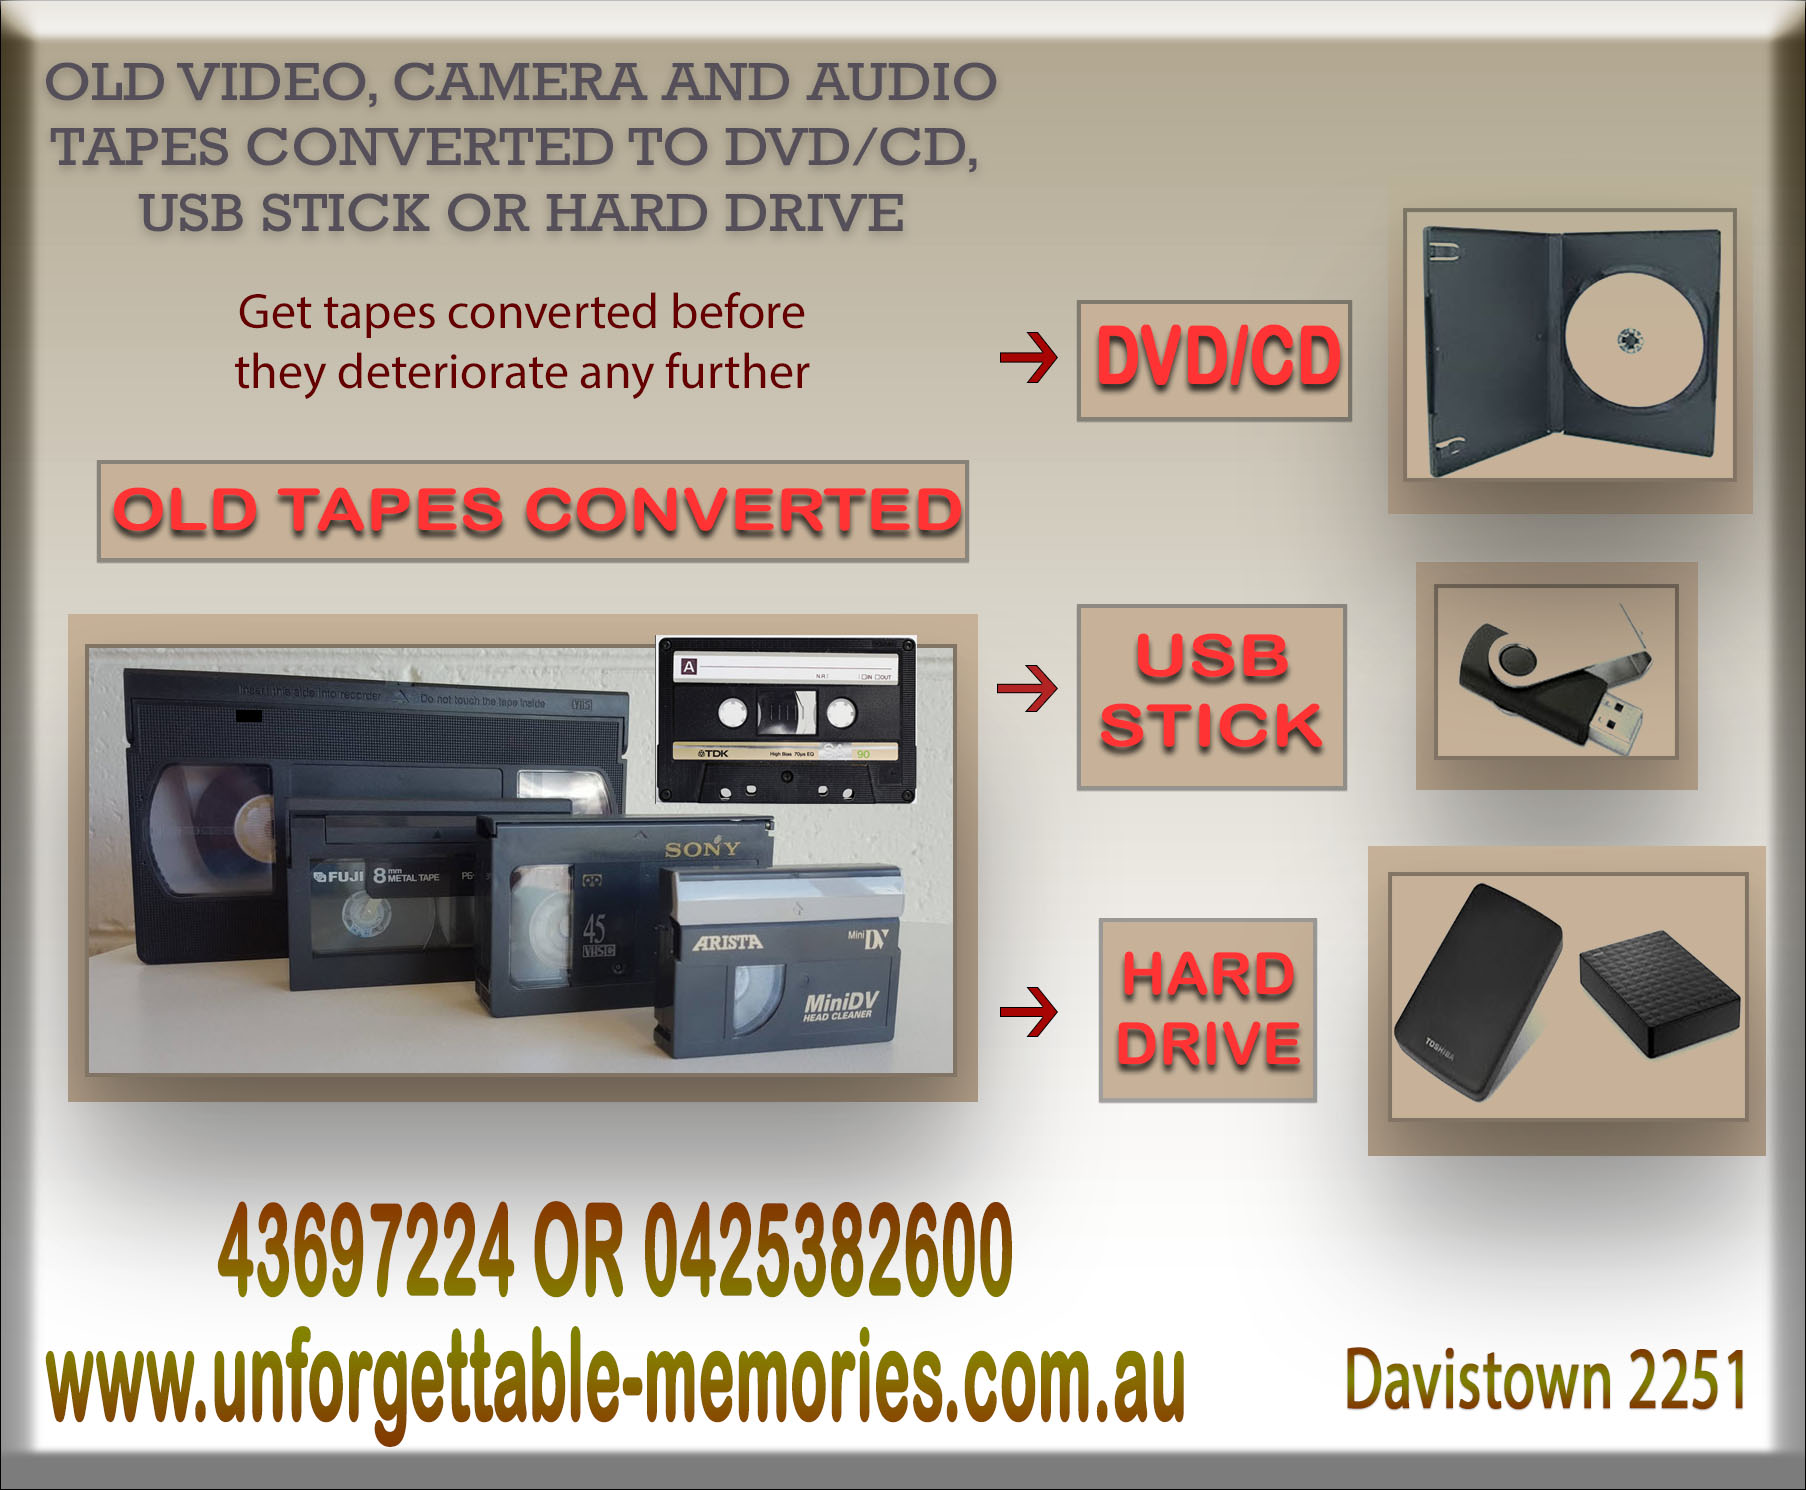 where to get vhs converted to dvd